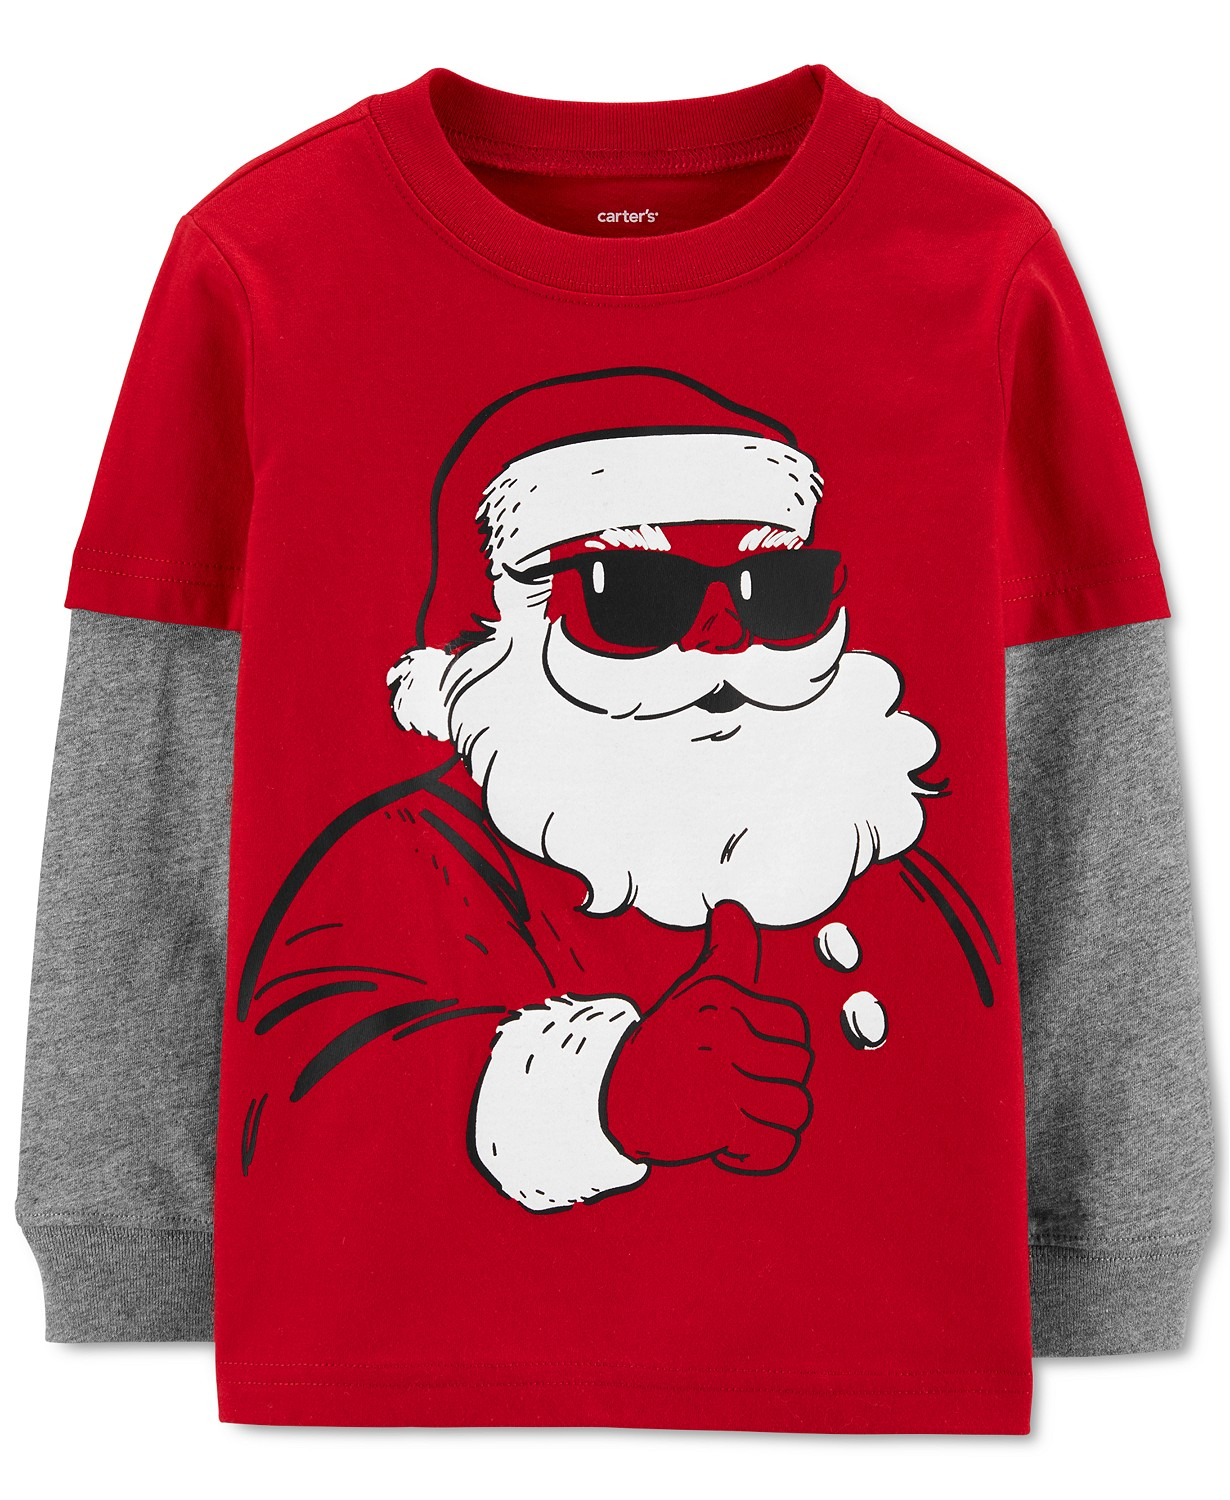 Carter's Toddler Boys Cotton Santa Claus Thermal Top